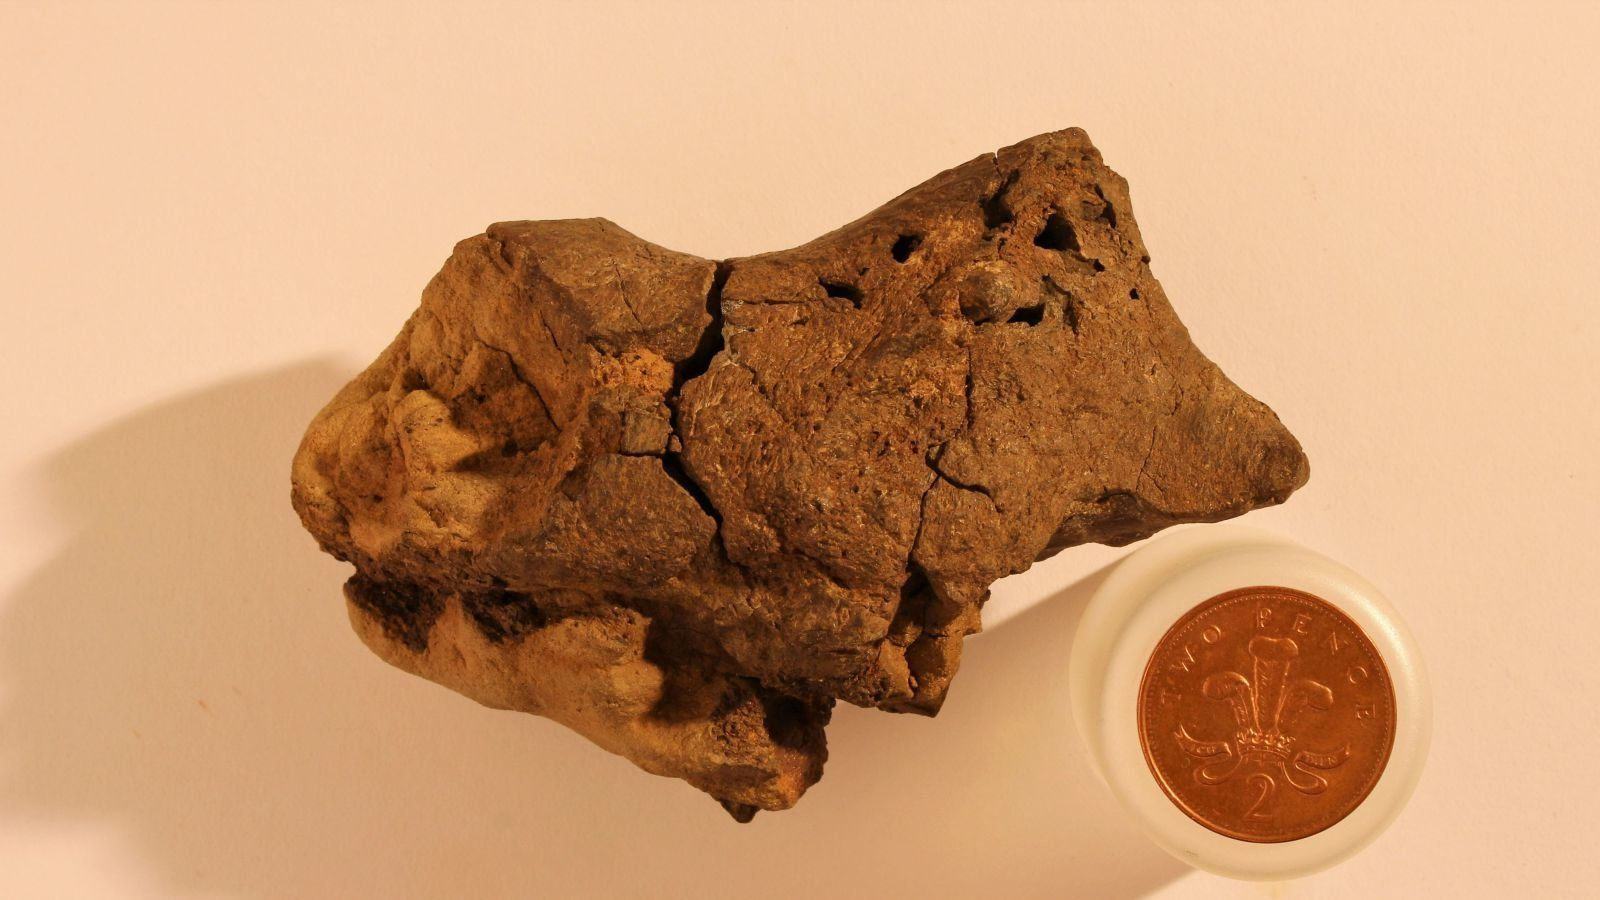 A fossilized dinosaur brain, easily mistakable for a rock.